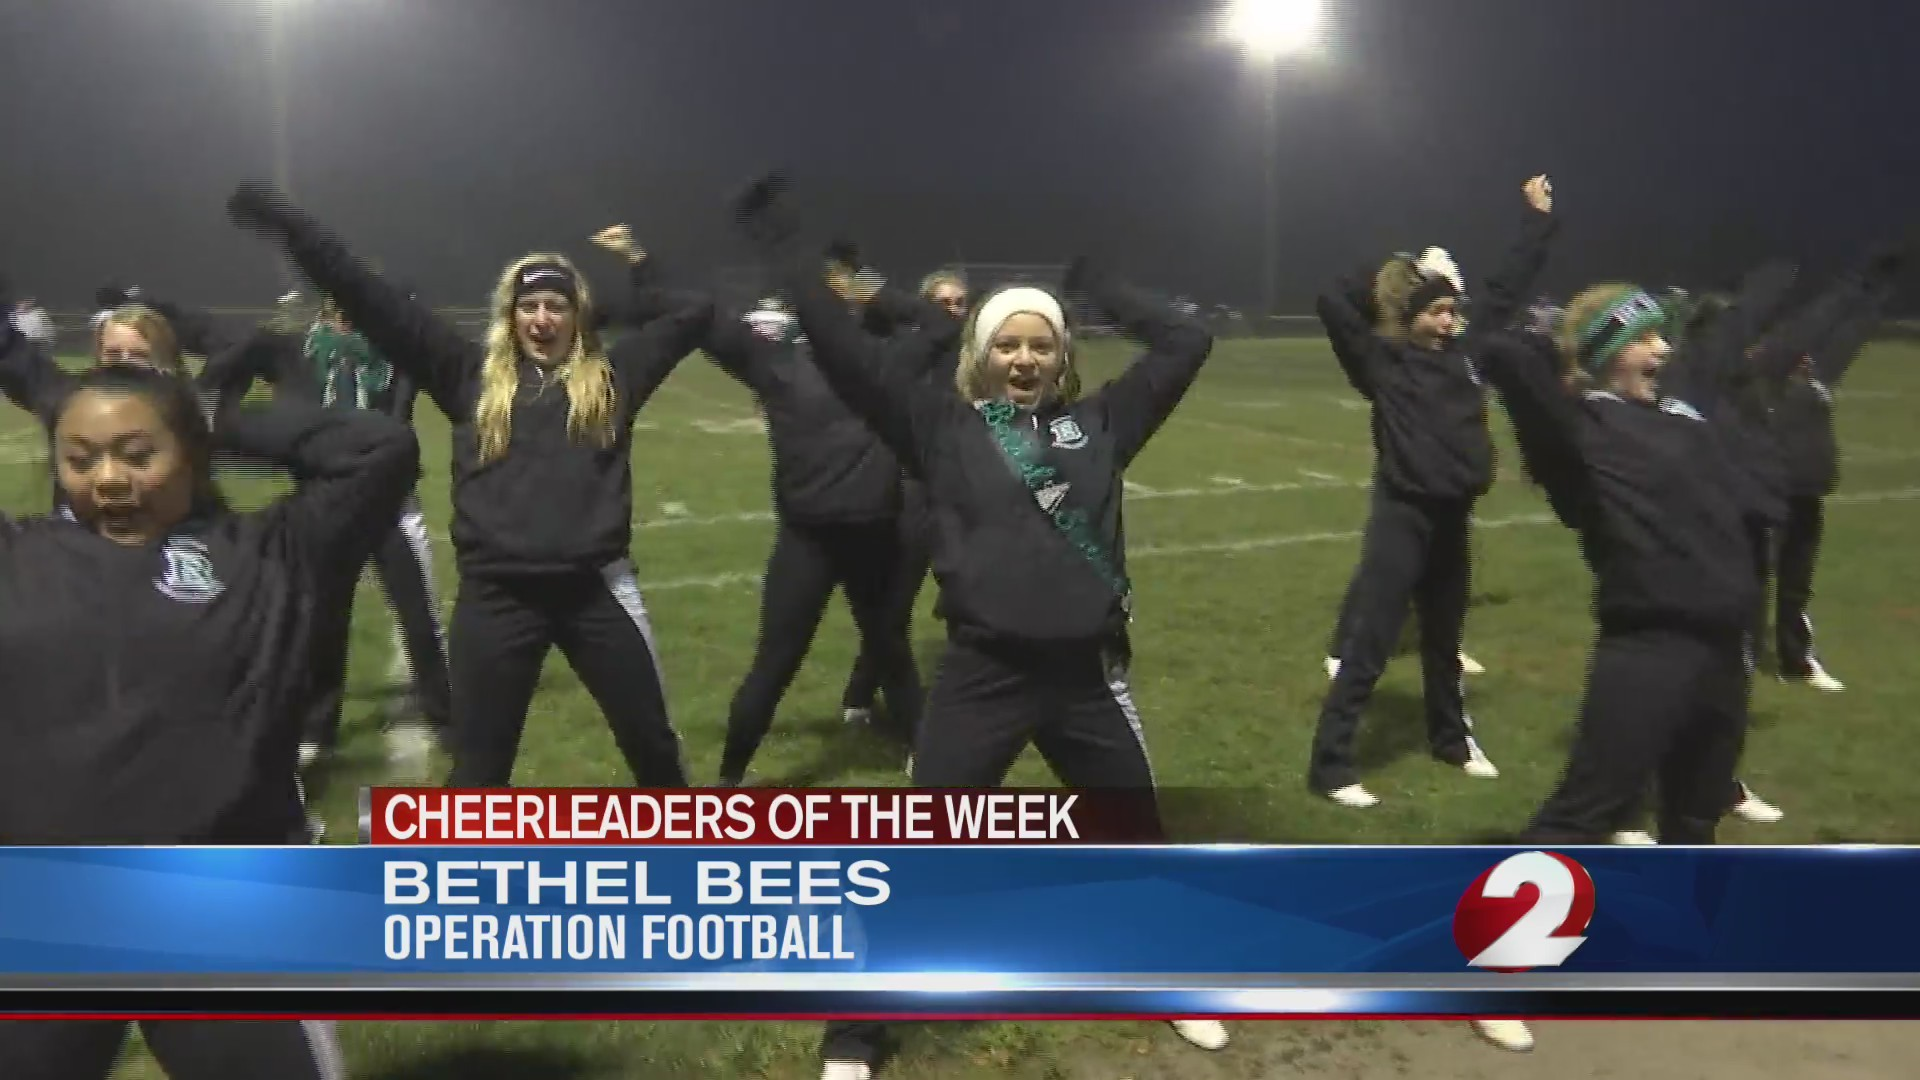 Operation Football Cheerleaders of the Week 10: Bethel Bees